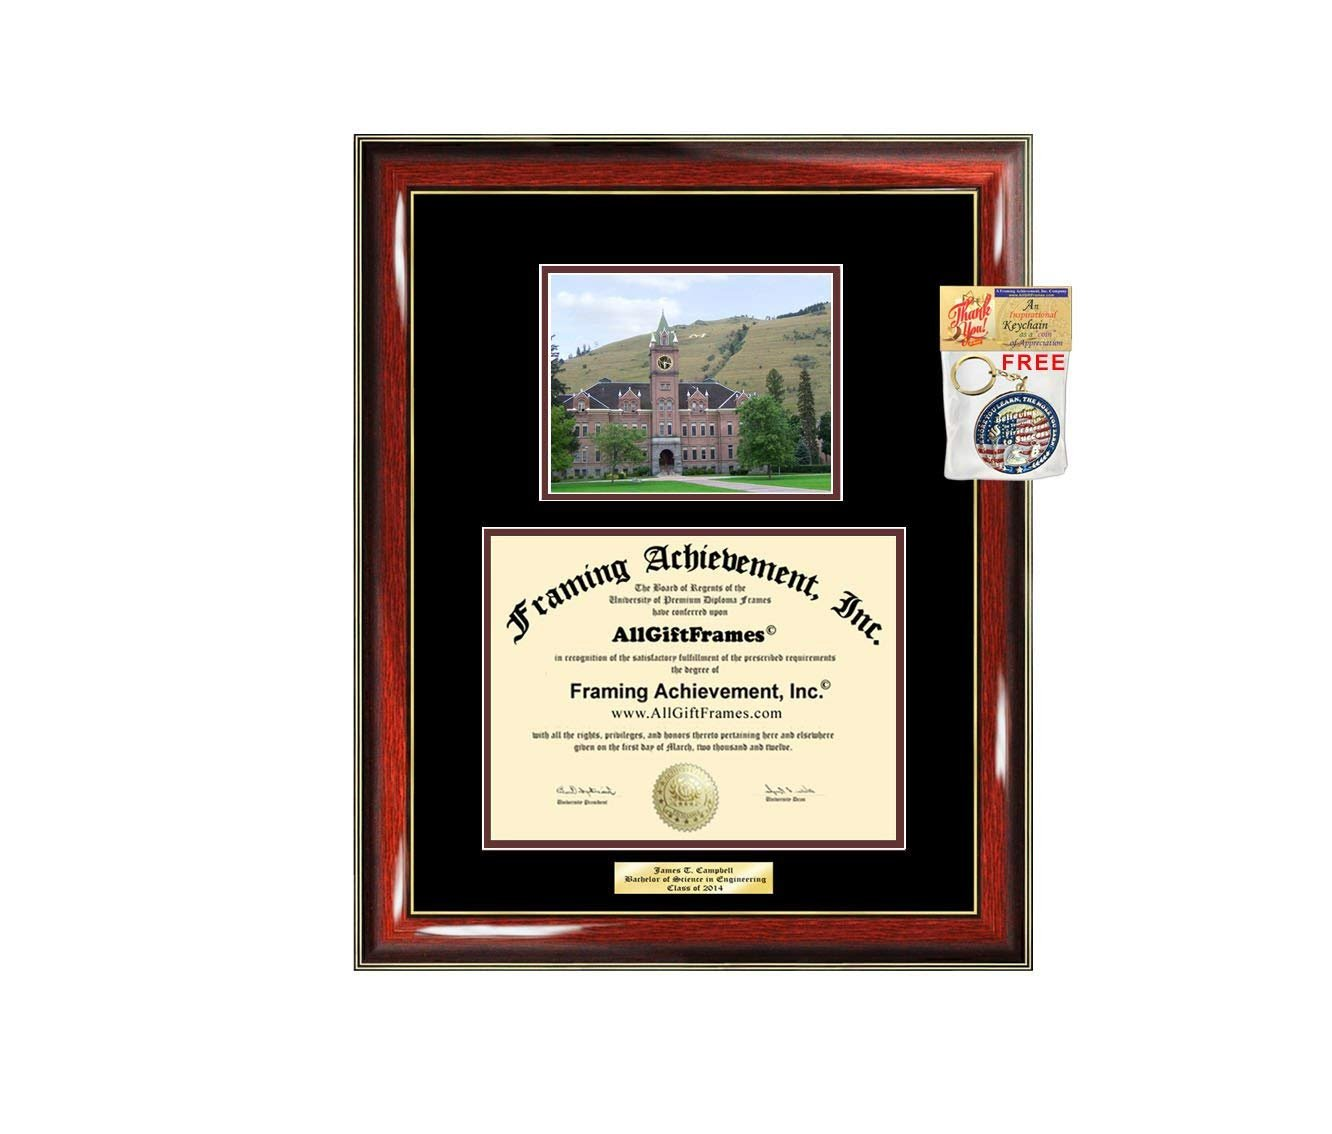 Diploma Frame University of Montana Graduation Gift Idea Engraved Picture  Frames Engraving Degree Cheap Graduate Bachelor Masters MBA PHD Doctorate  School 7ddef1801d3ef